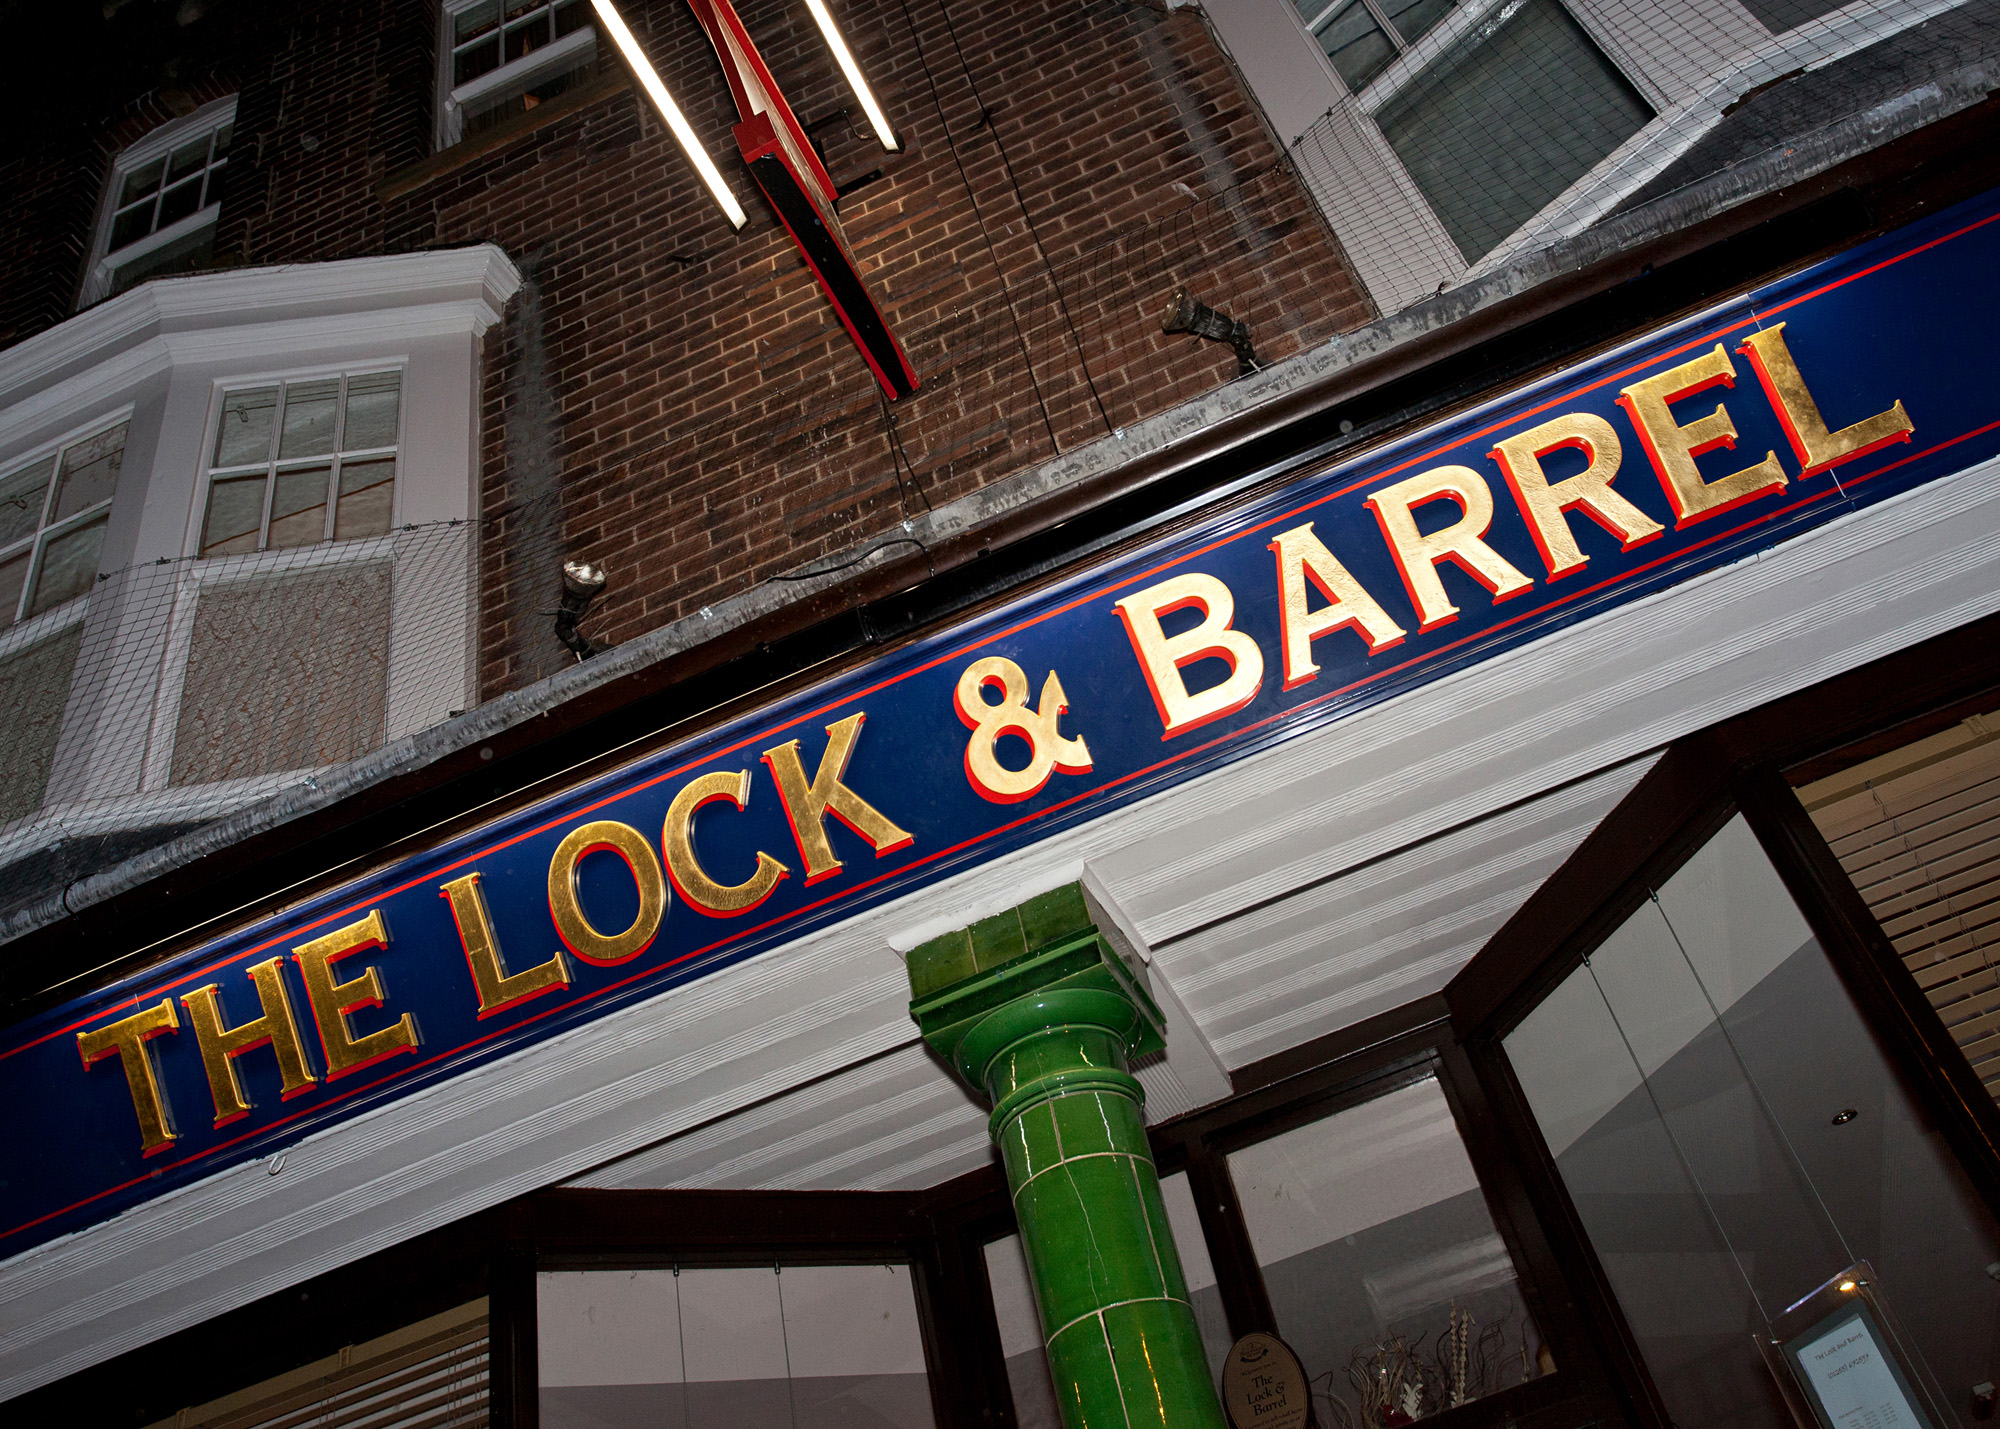 Lock & Barrel, Frinton-on-Sea